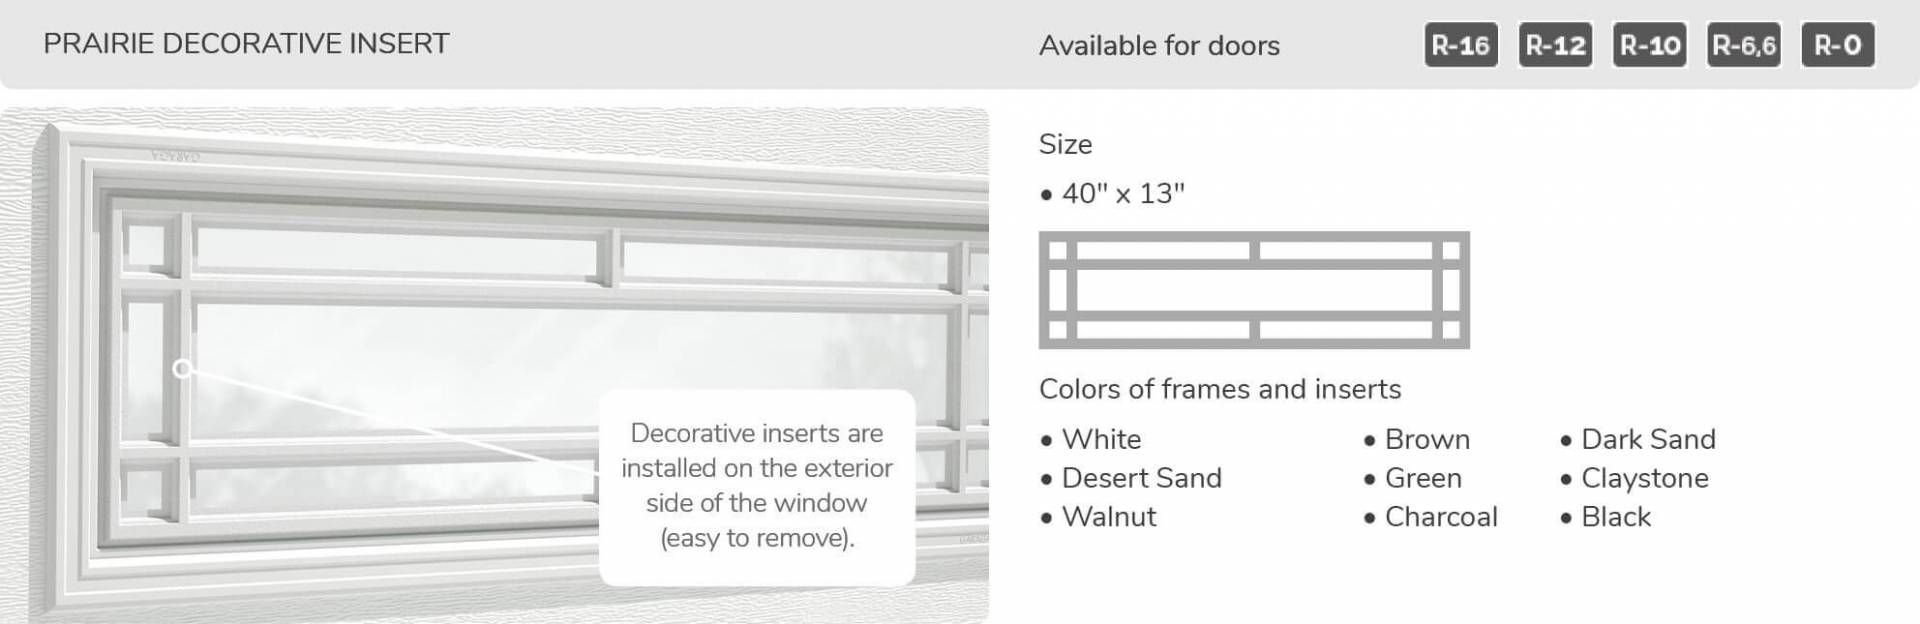 "Prairie Decorative Insert, 40"" x 13"", available for doors R-16, R-12, R-10, R-6.6, R-0"